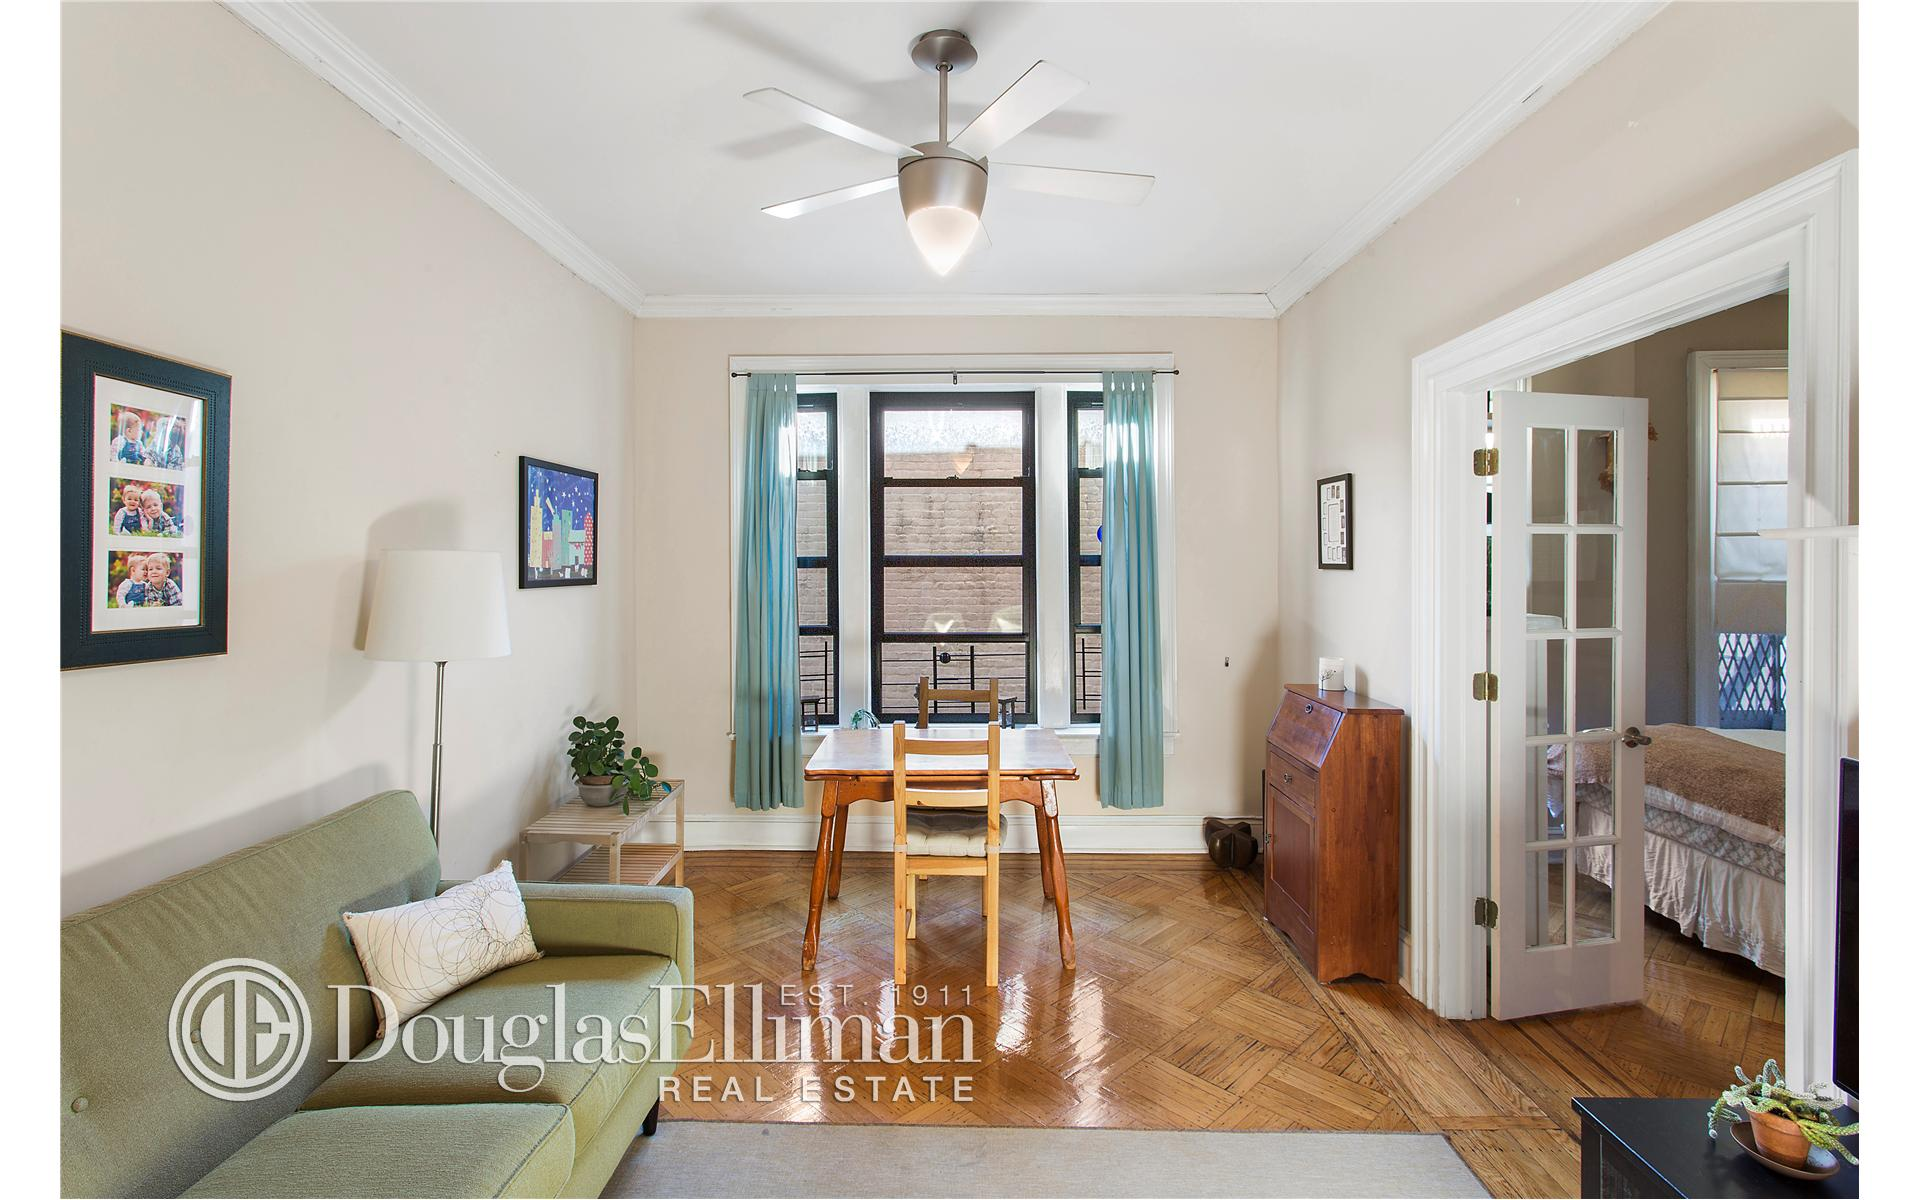 New Windsor (NY) United States  City pictures : ... for Sale at 250 Seeley Street Brooklyn, New York 11218 United States